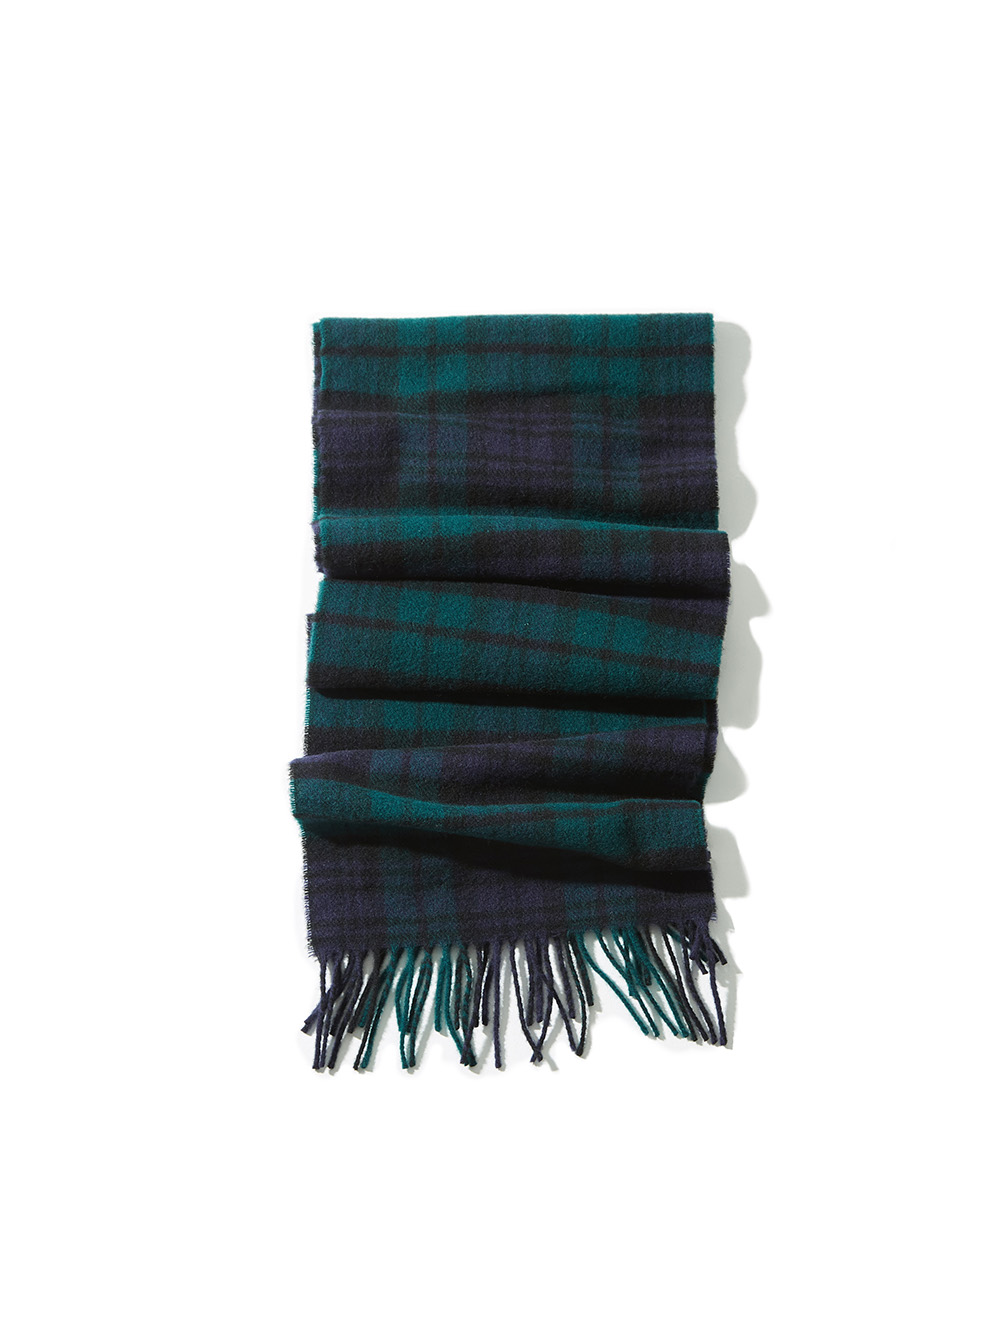 A_Very_Good_Christmas_Guide-Goodhood-2018_Scarves.jpg